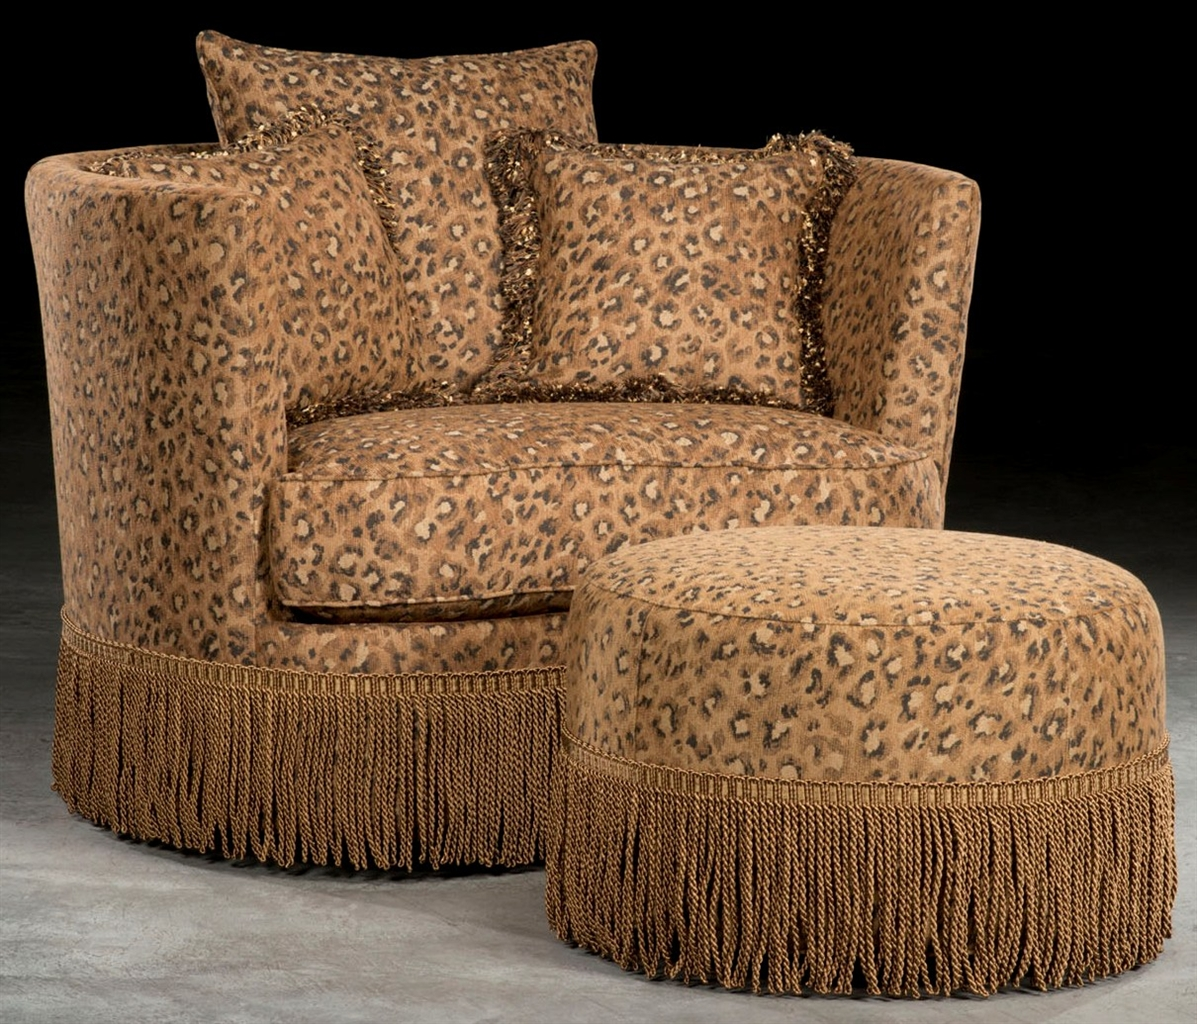 Leopard Print Chairs Home Decor